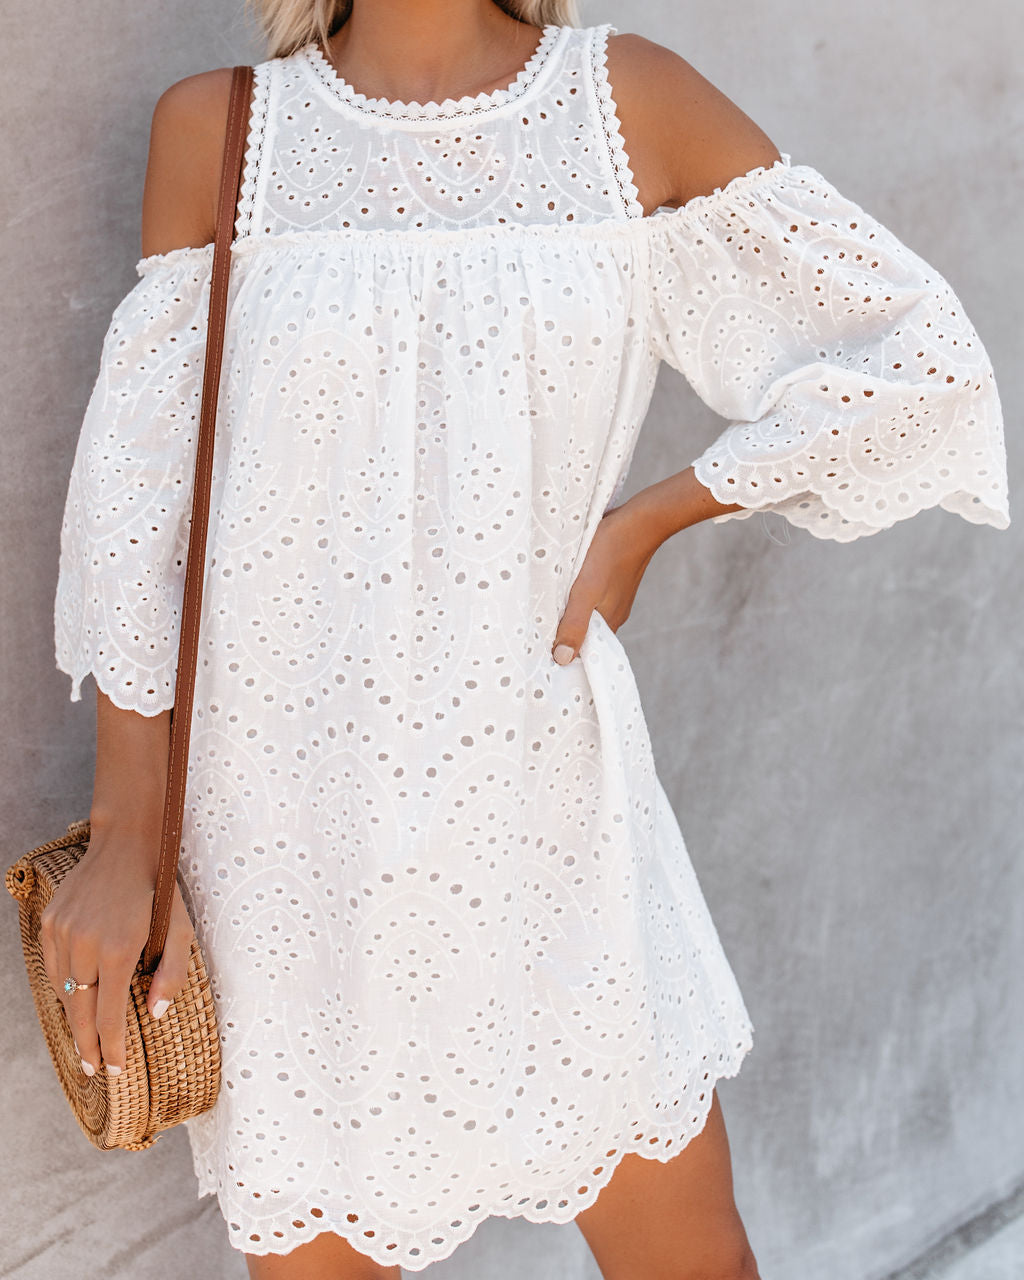 2c2a2ad3d0c Must Be Dreaming Cold Shoulder Cotton Eyelet Dress - White – VICI